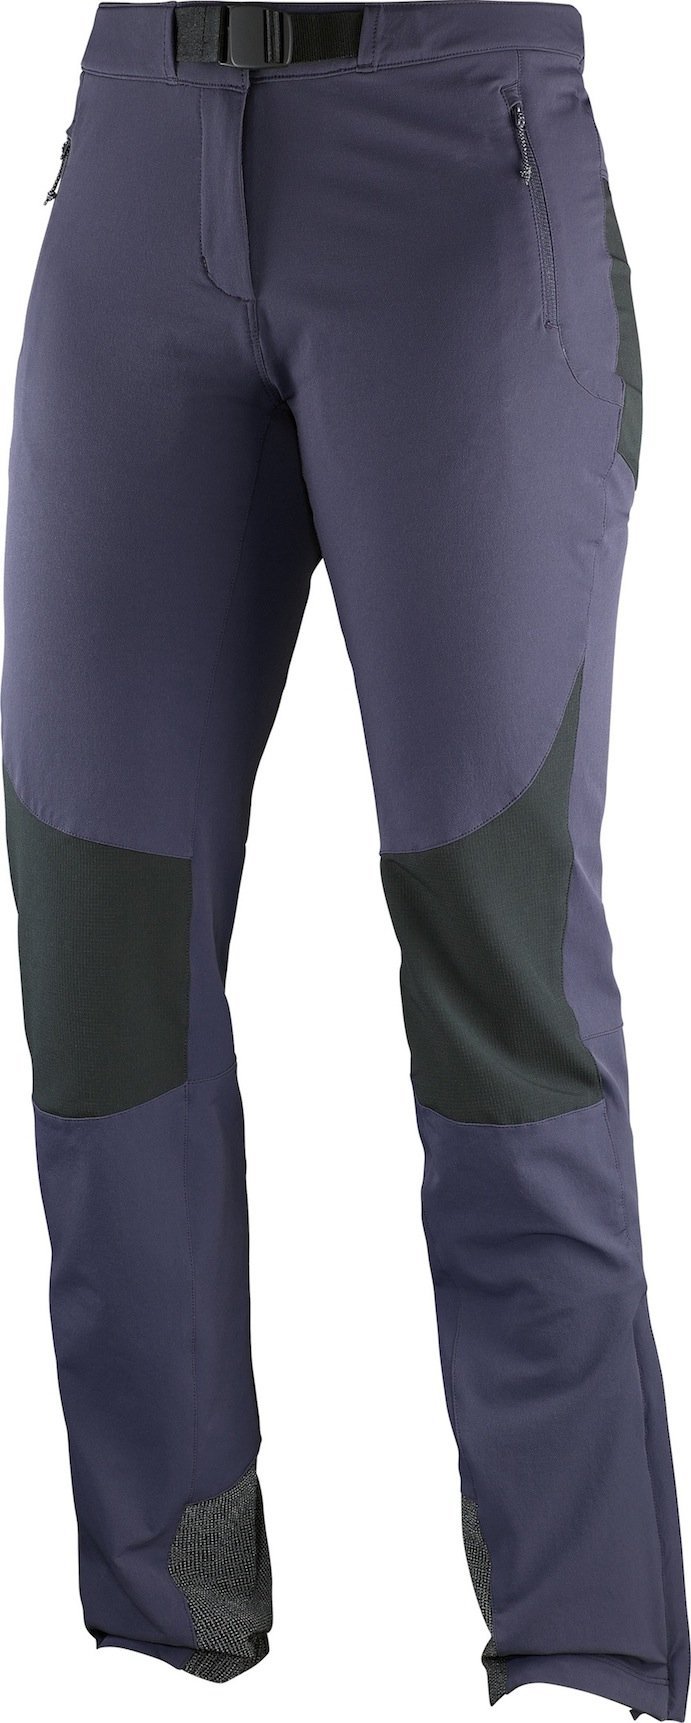 airFreshing_2016_Salomon_Sommerkollektion_Hiking_Wanderhose_Women_wayfarer_mountainpant_nightshade